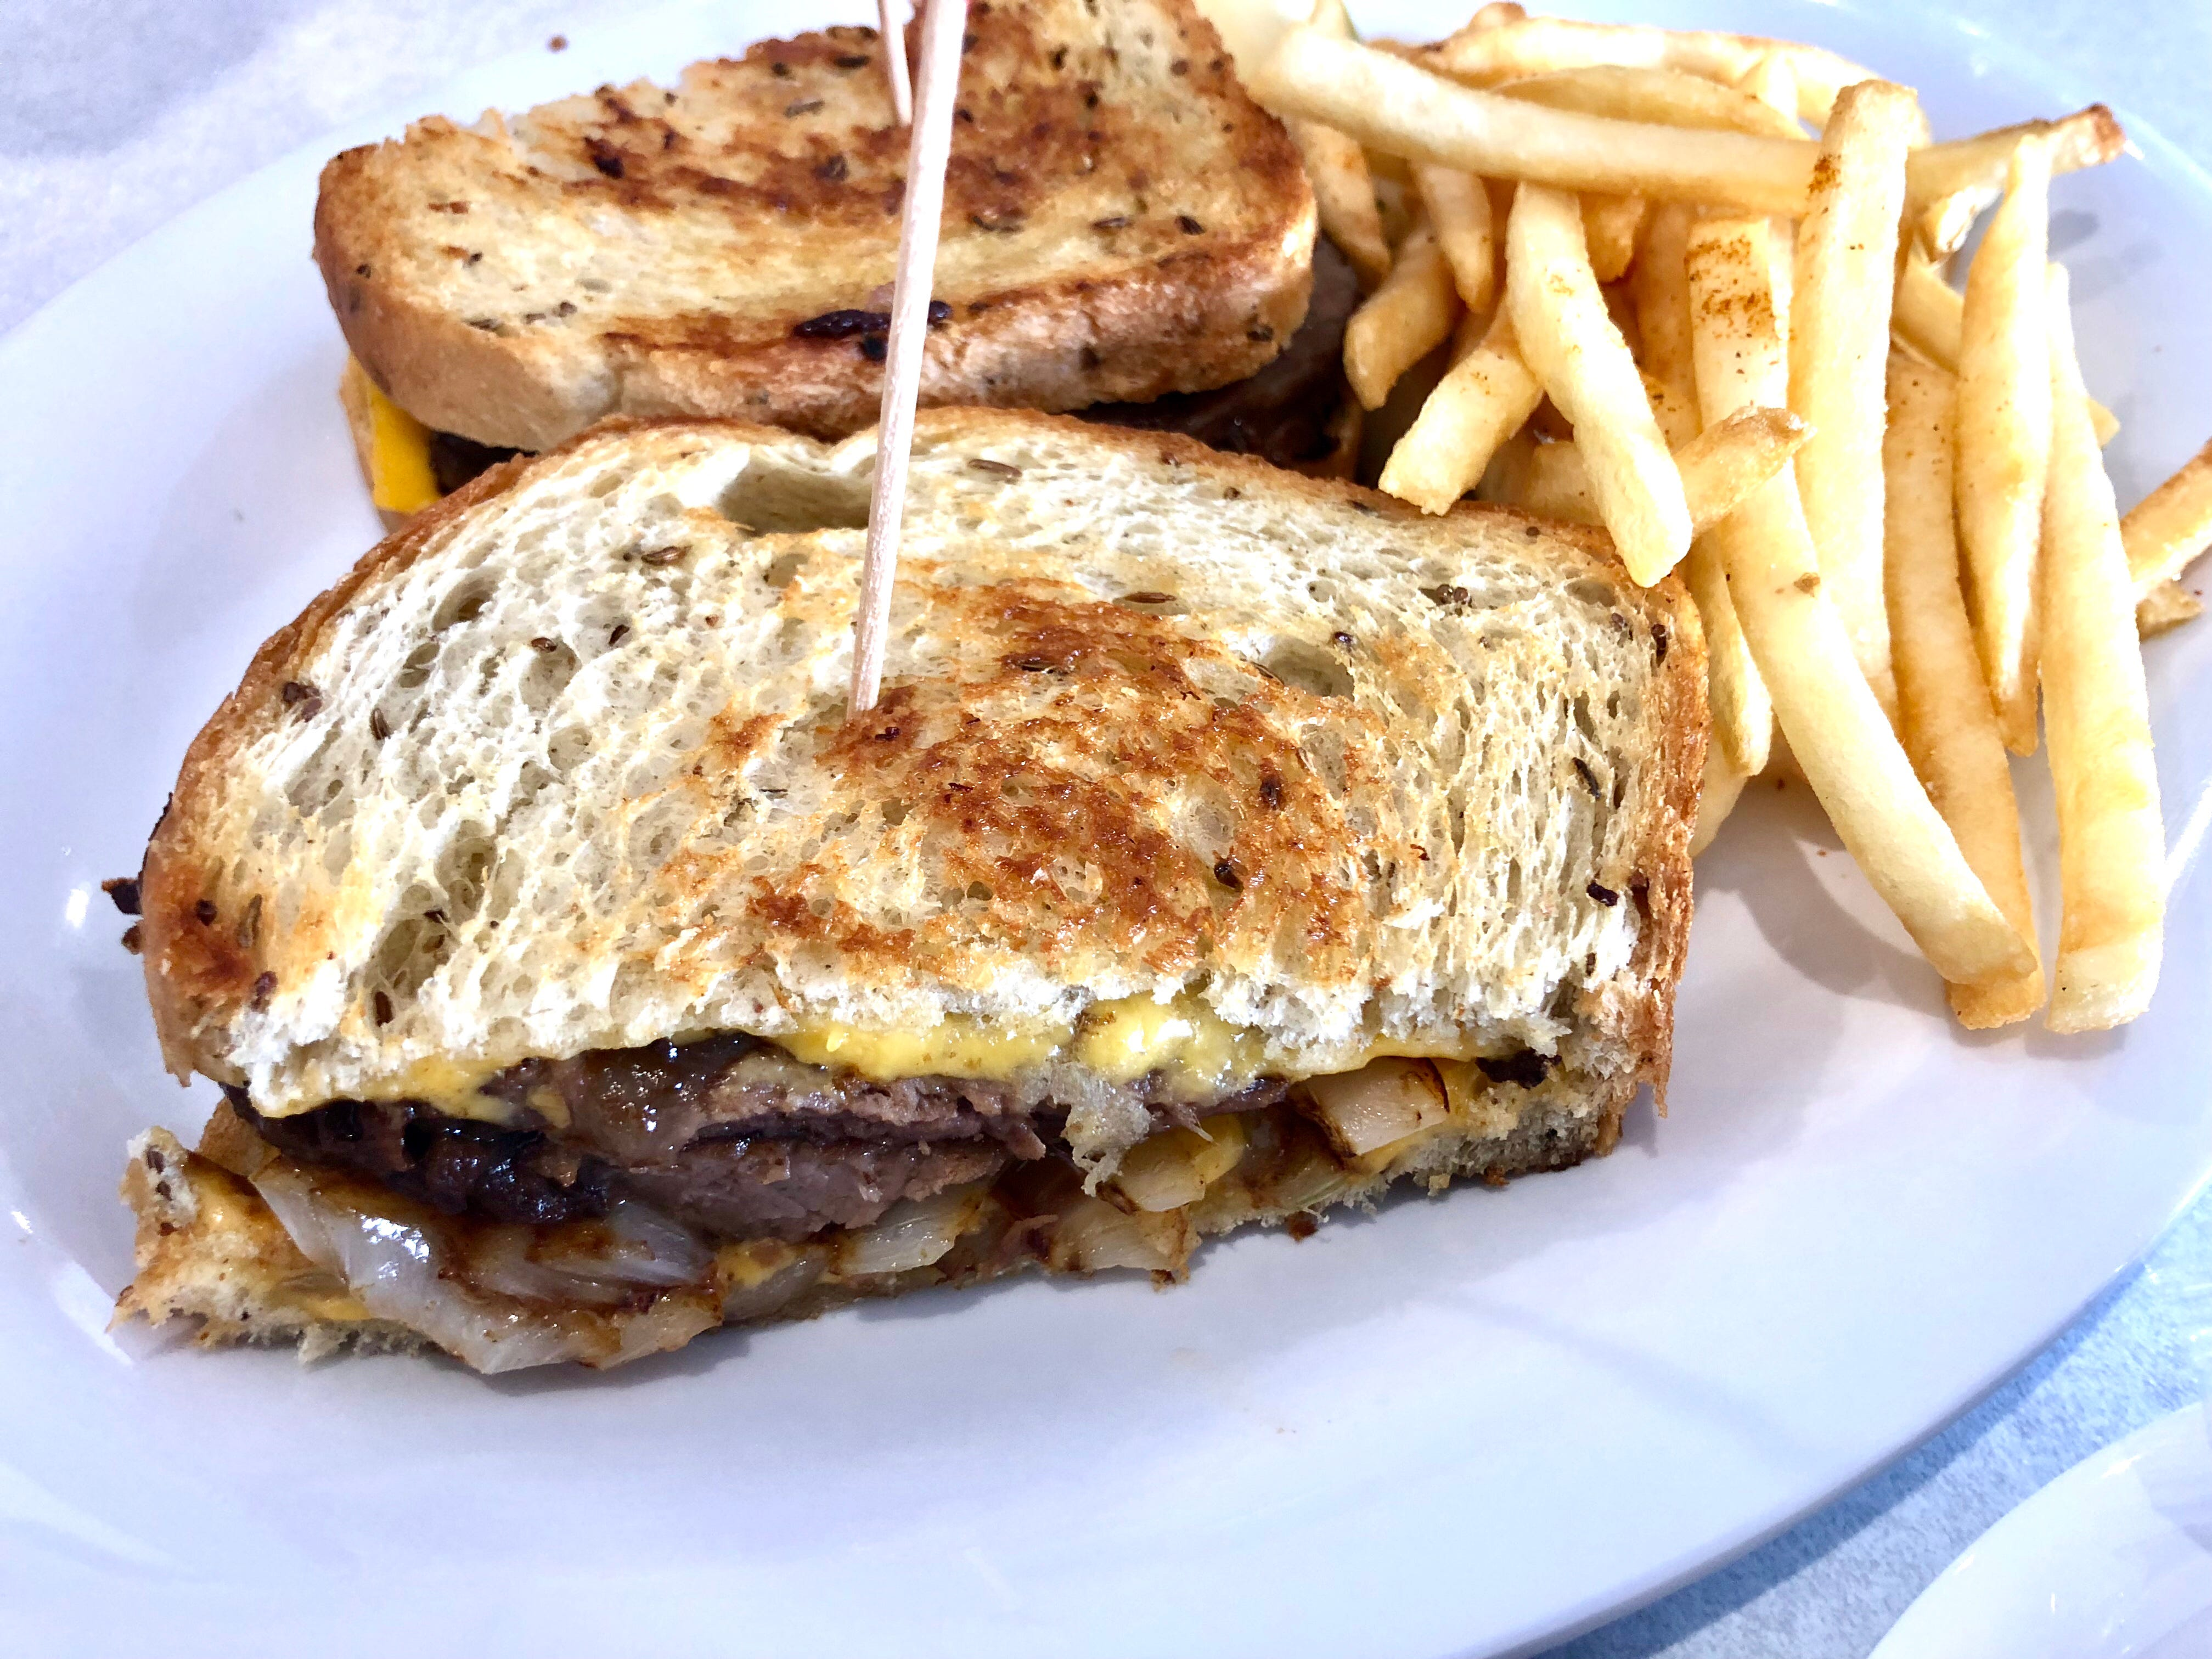 A pot roast melt layered with American cheese and grilled onions at the new LuLu B's in North Naples.